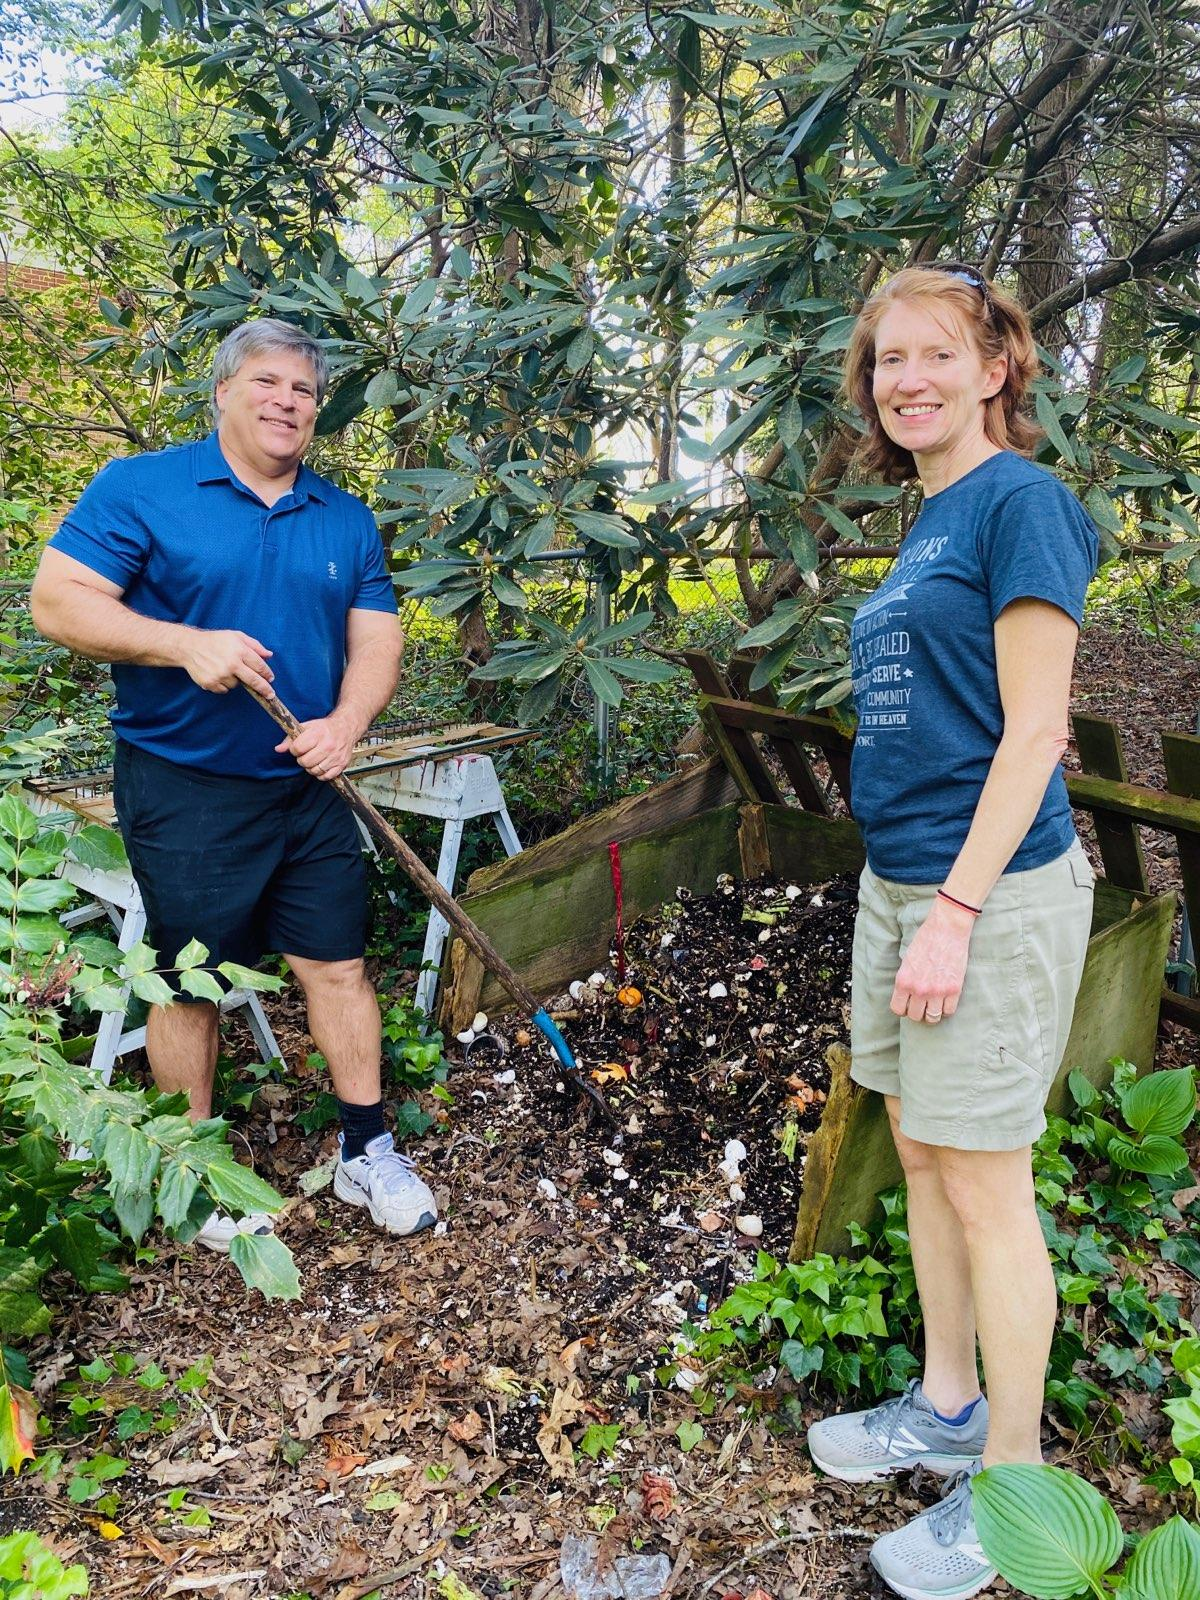 Council Member Smith and wife Anne composting